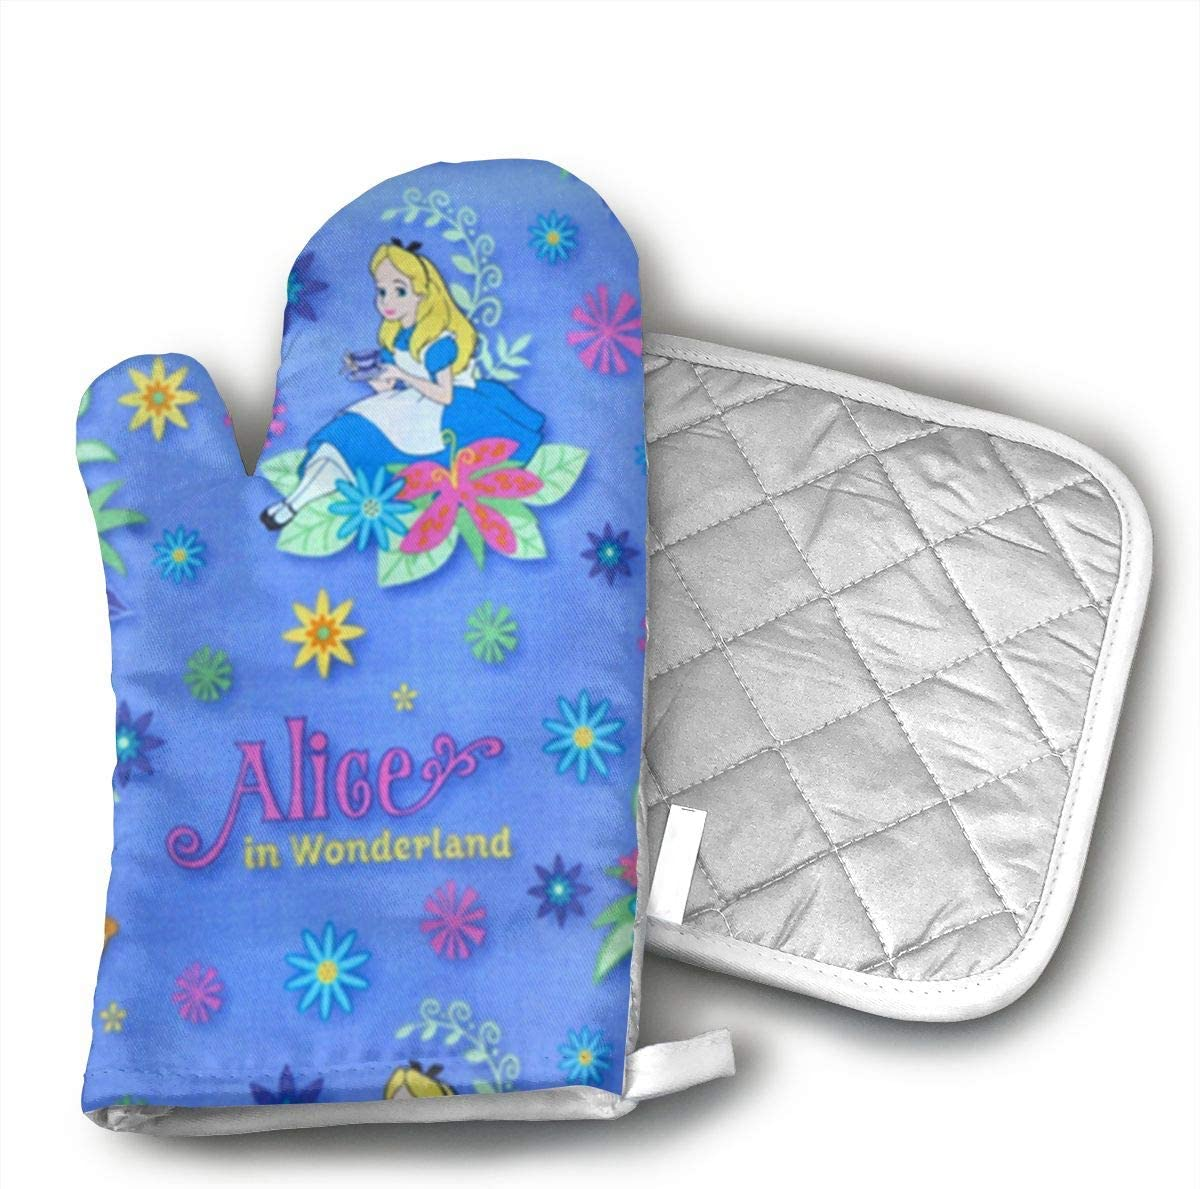 Alice in Wonderland Oven Mitts Heat Resistant Kitchen Gloves and Potholders BBQ Gloves-Cotton Pot Holders Non Slip Oven Gloves for Kitchen